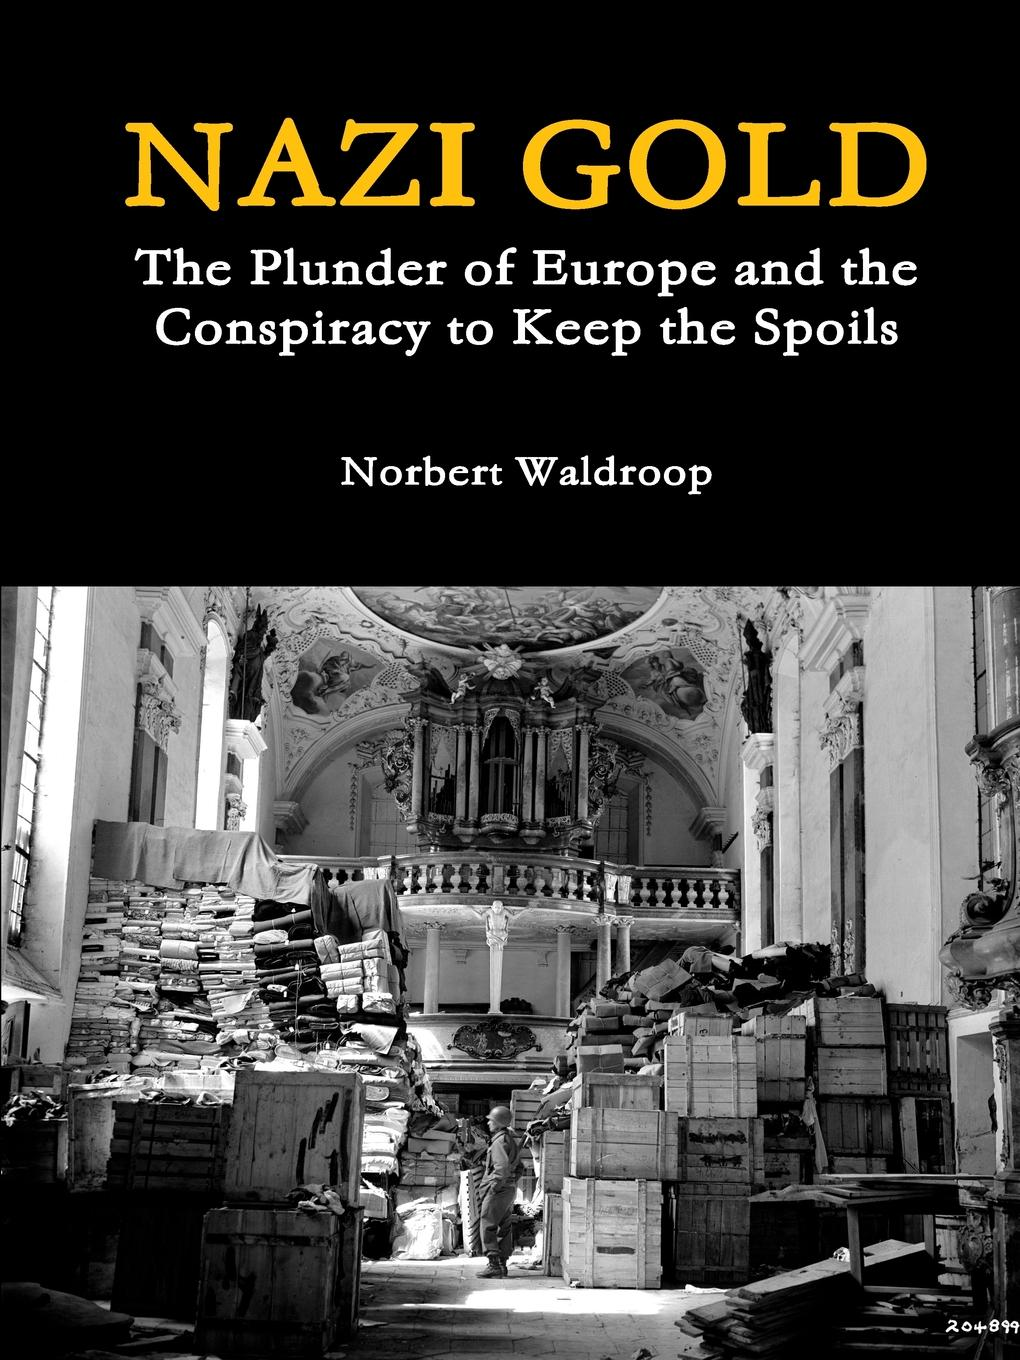 лучшая цена Norbert Waldroop Nazi Gold. The Plunder of Europe and the Conspiracy to Keep the Spoils